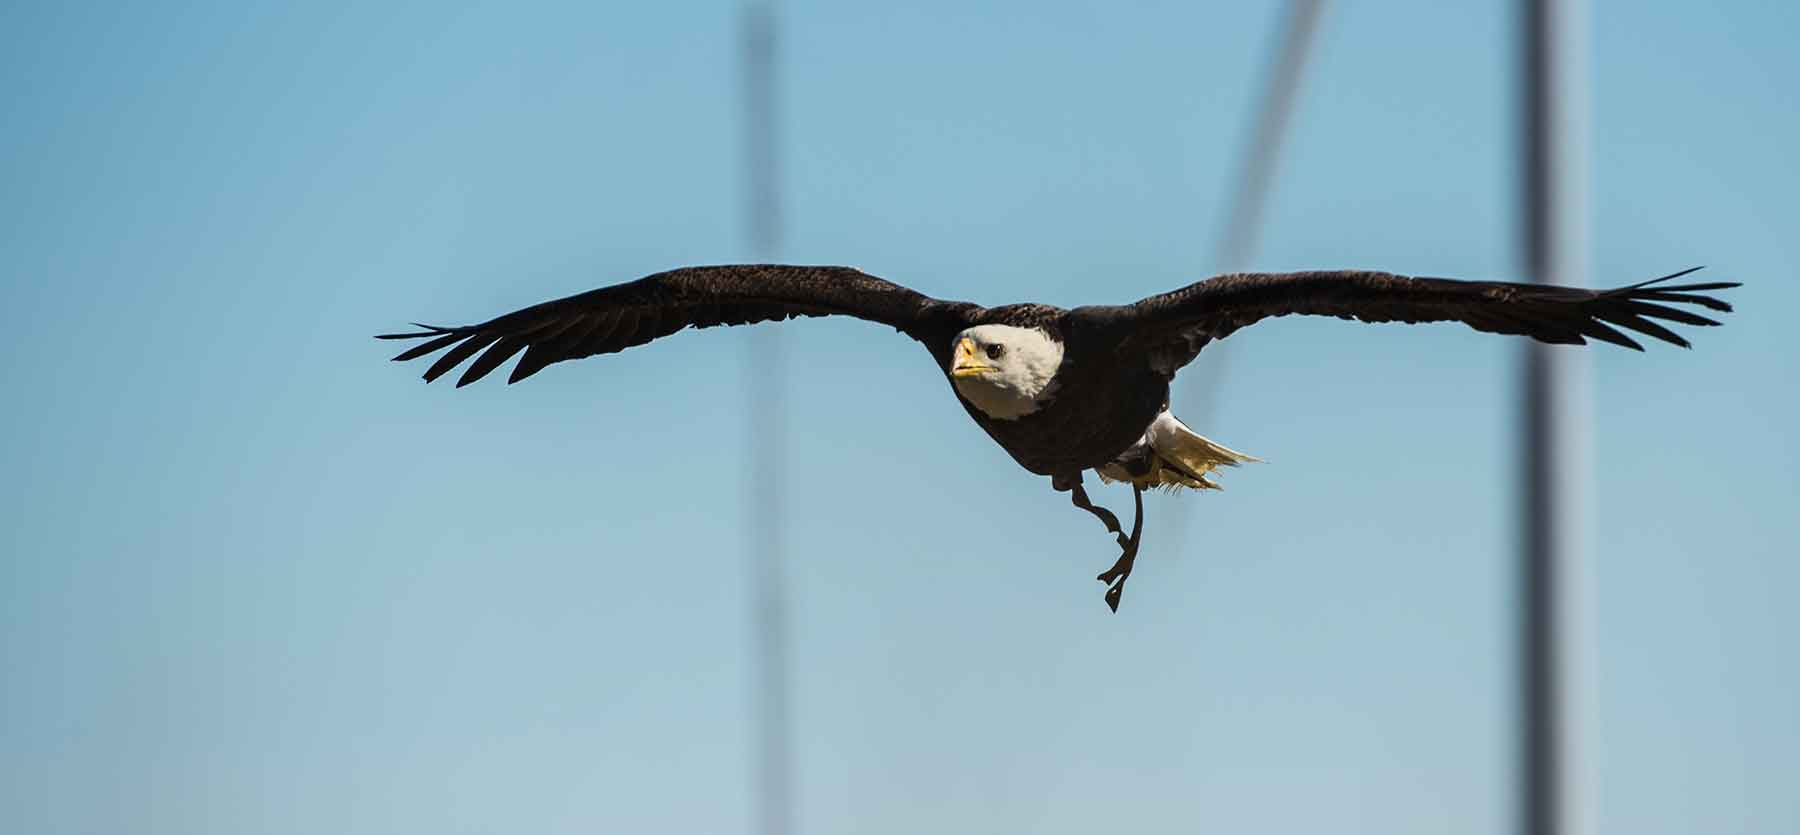 A bald eagle flies through the air in a wind farm. A wind turbine is seen in the background.